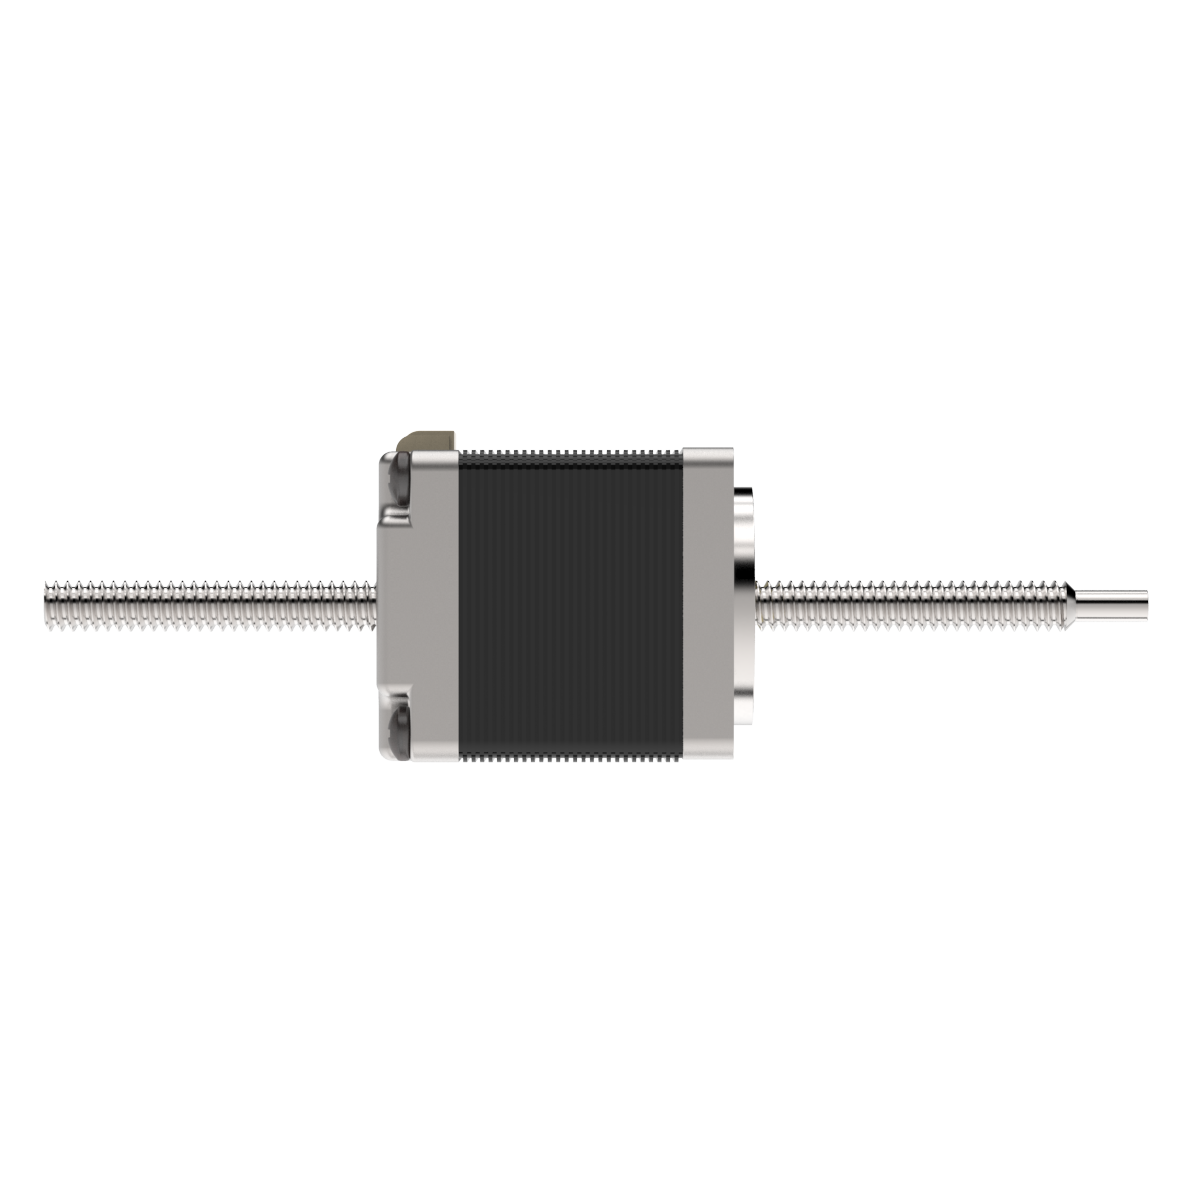 Stepper Motor Linear Actuator - Non-Captive - SMA-11SN-018025-2.1V